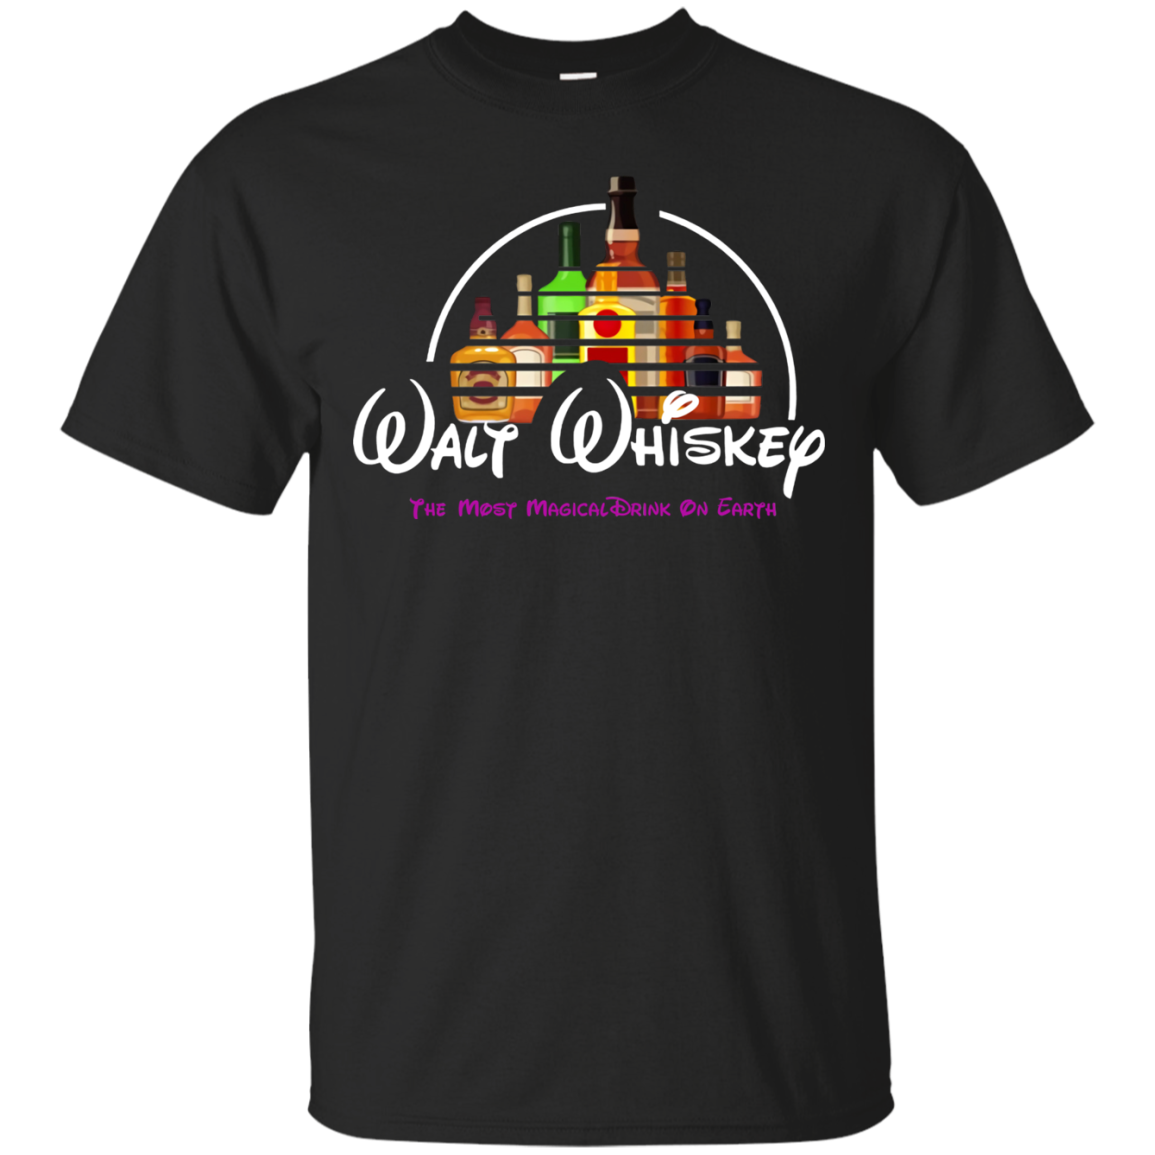 19 Malt Whiskey Disney Shirt